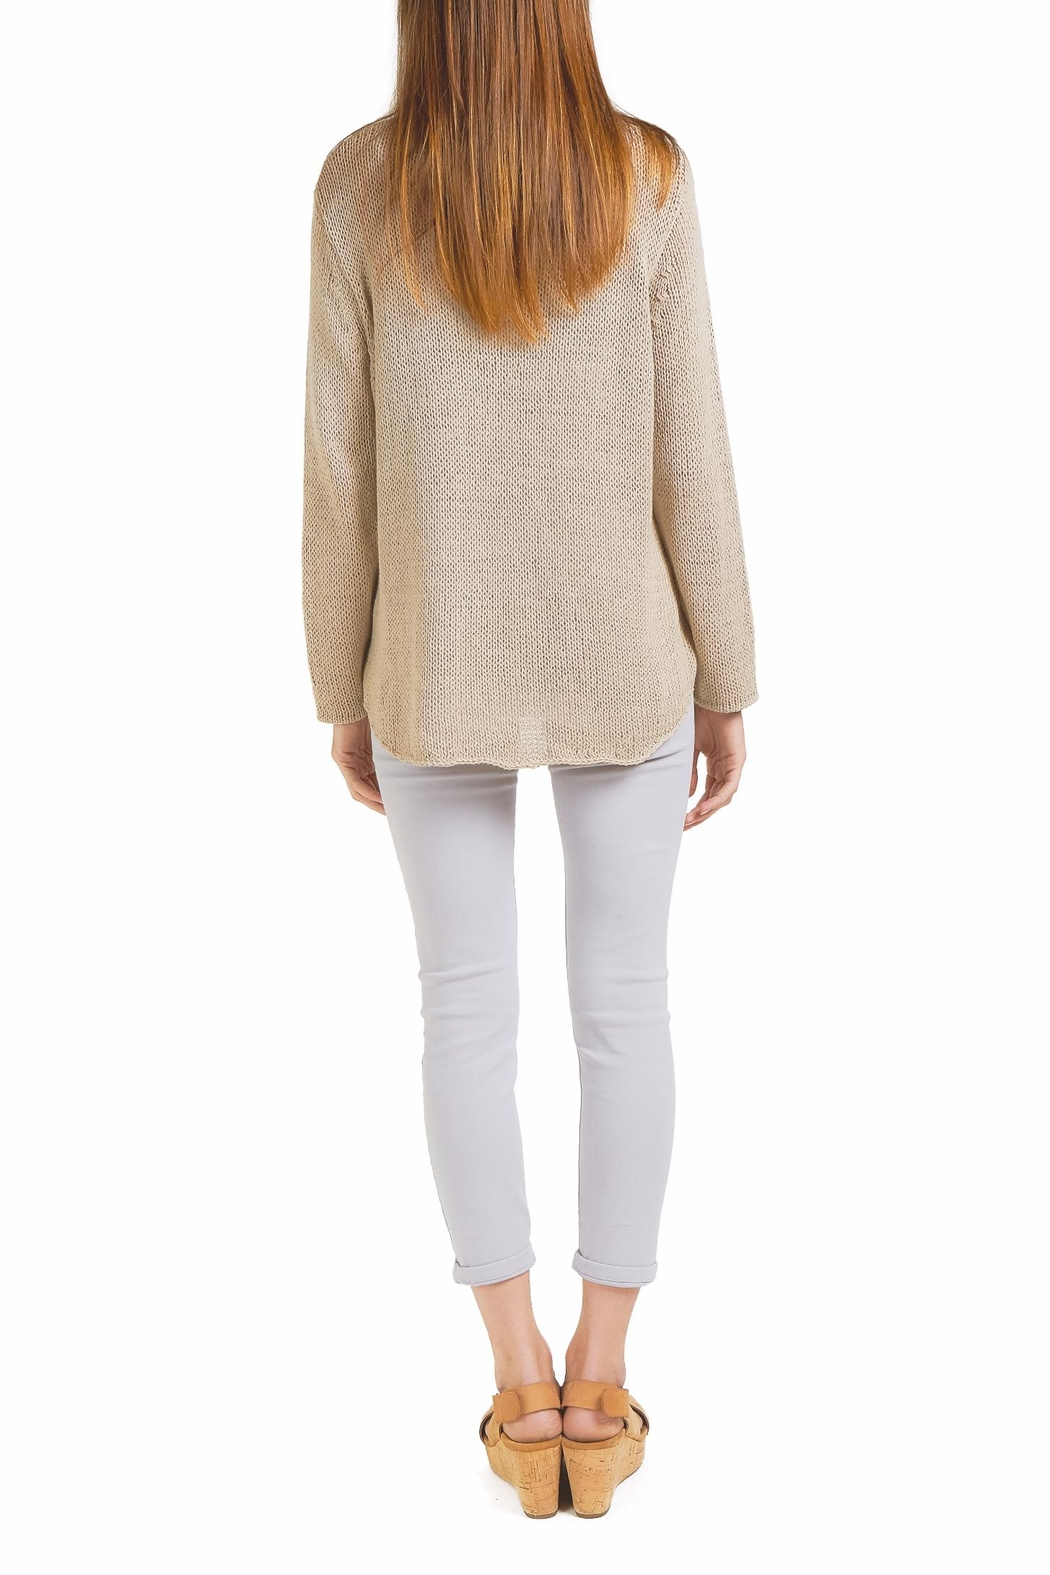 Wooden Ships Beach Sweater Top - Side Cropped Image